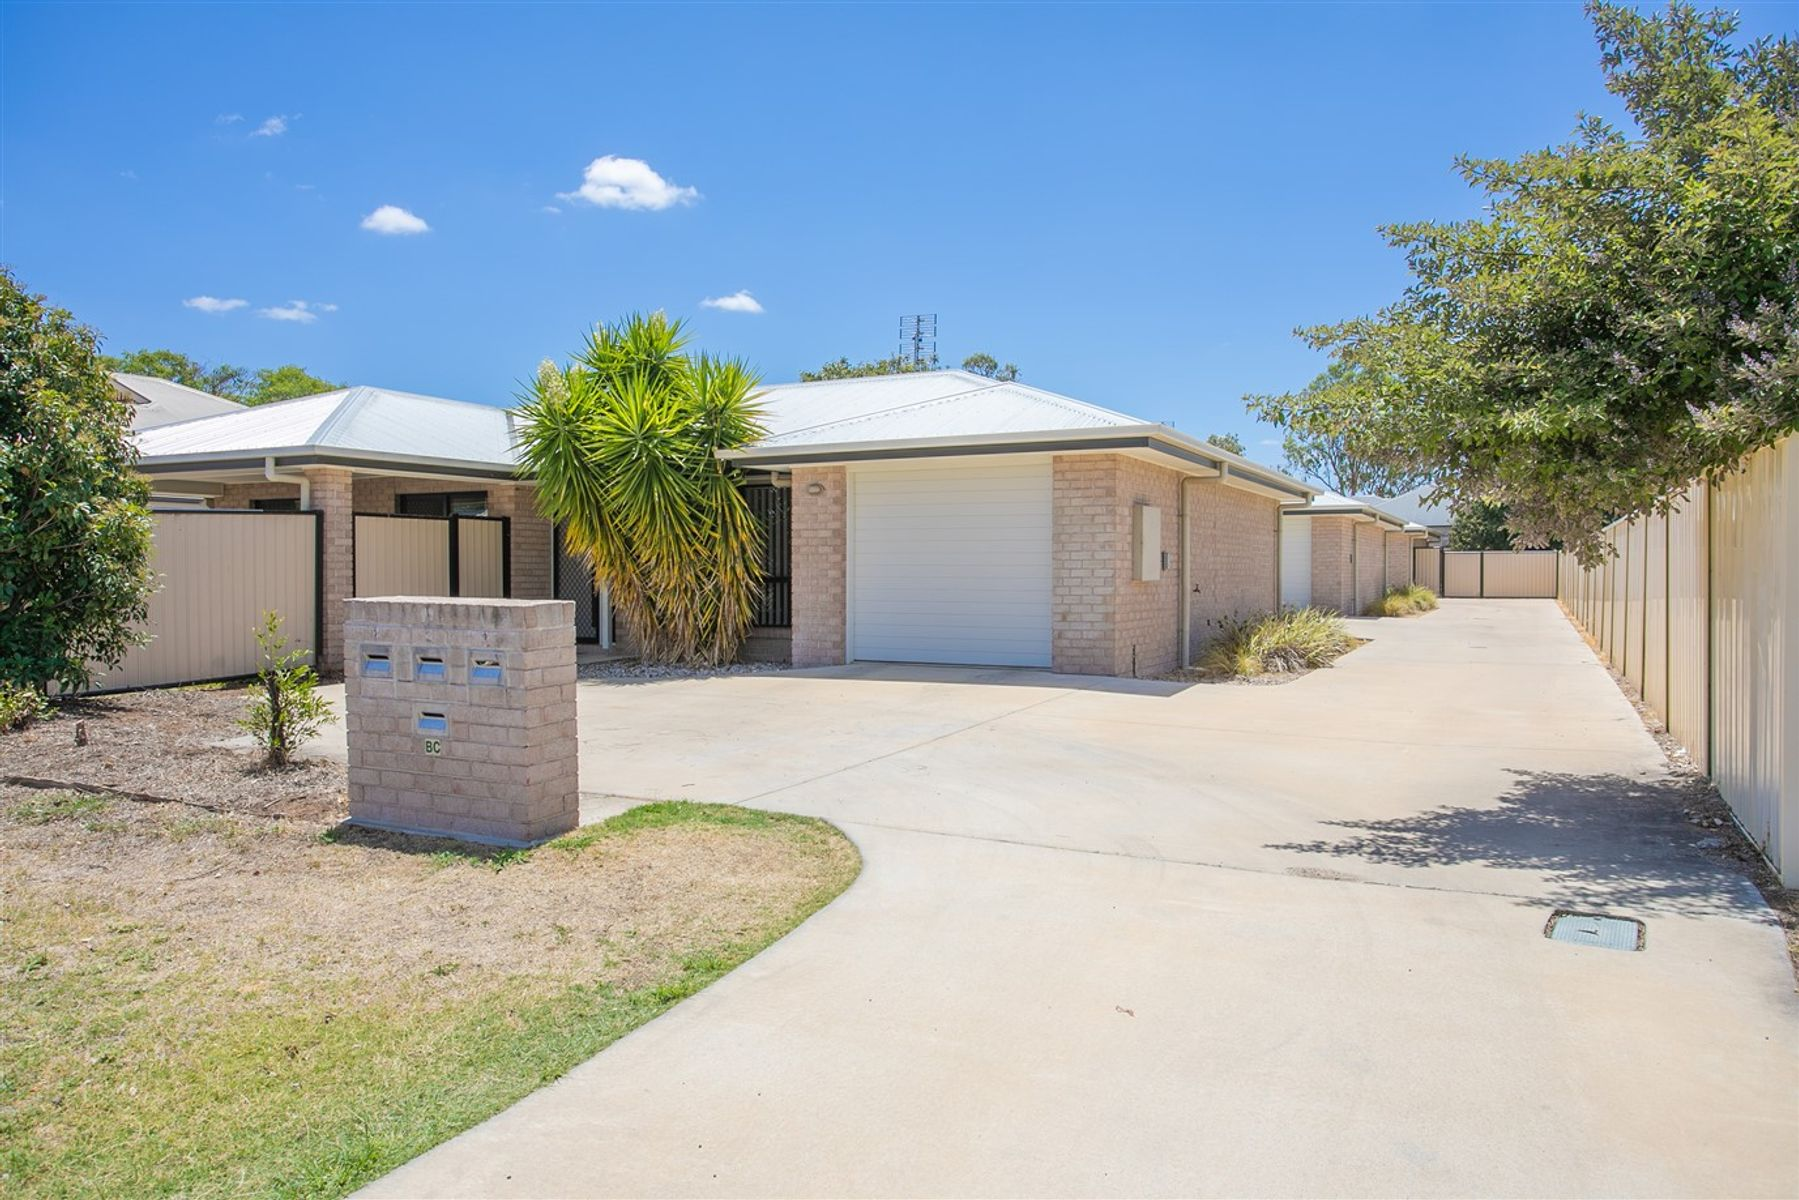 1-3/14 Back Avenue, Chinchilla, QLD 4413